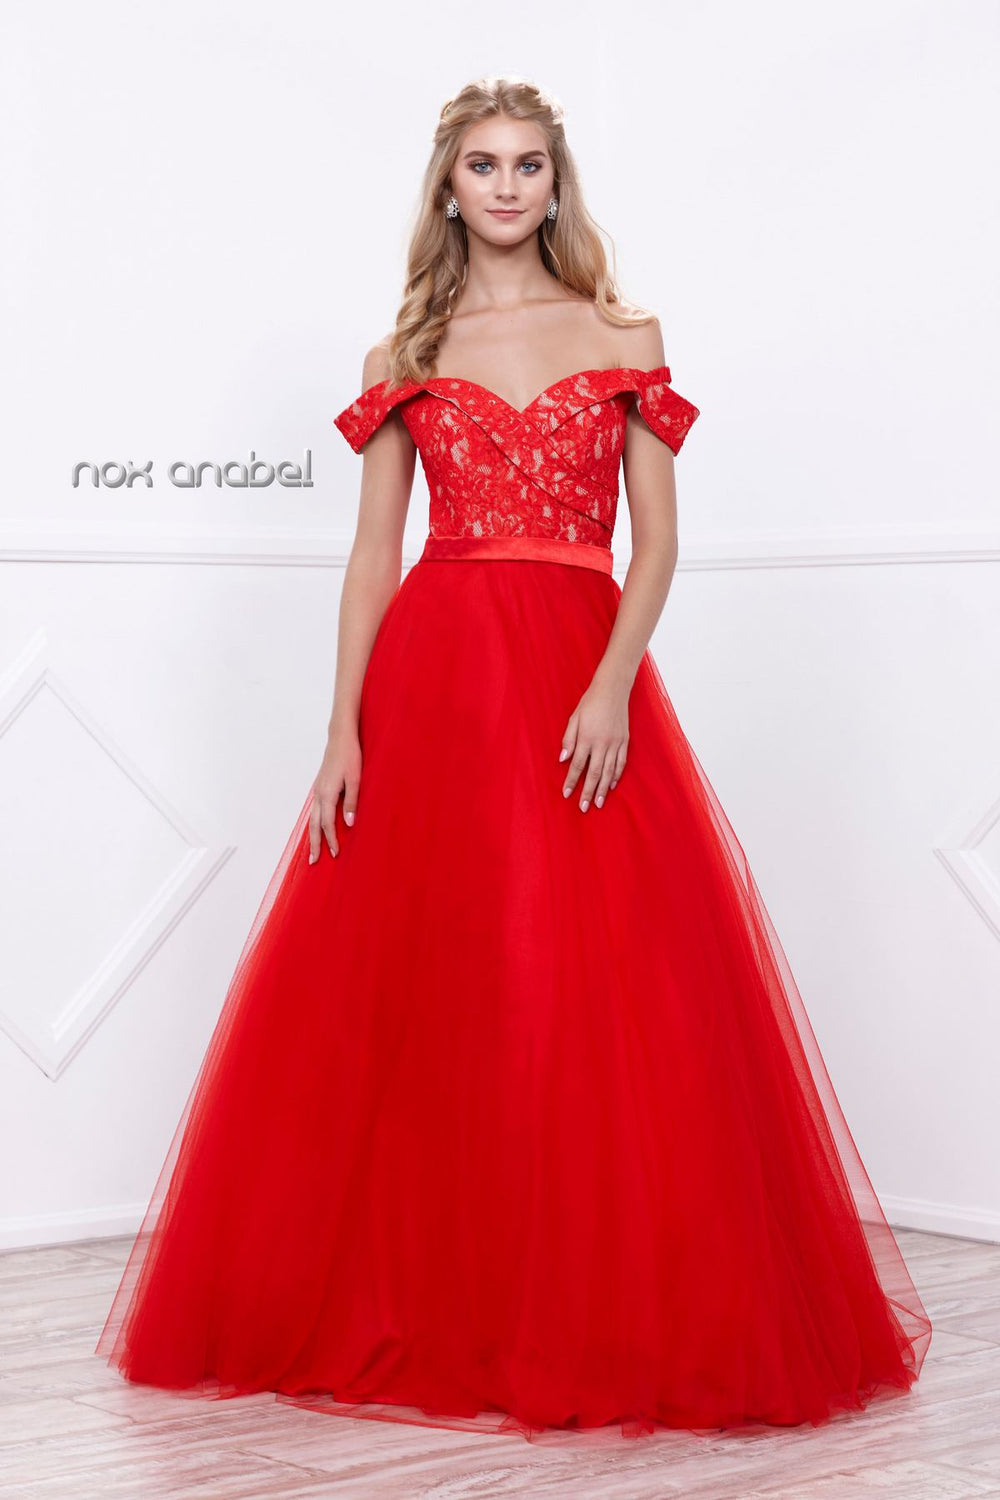 OFF-SHOULDER SWEETHEART NECKLINE LACE EVENING BALLGOWN